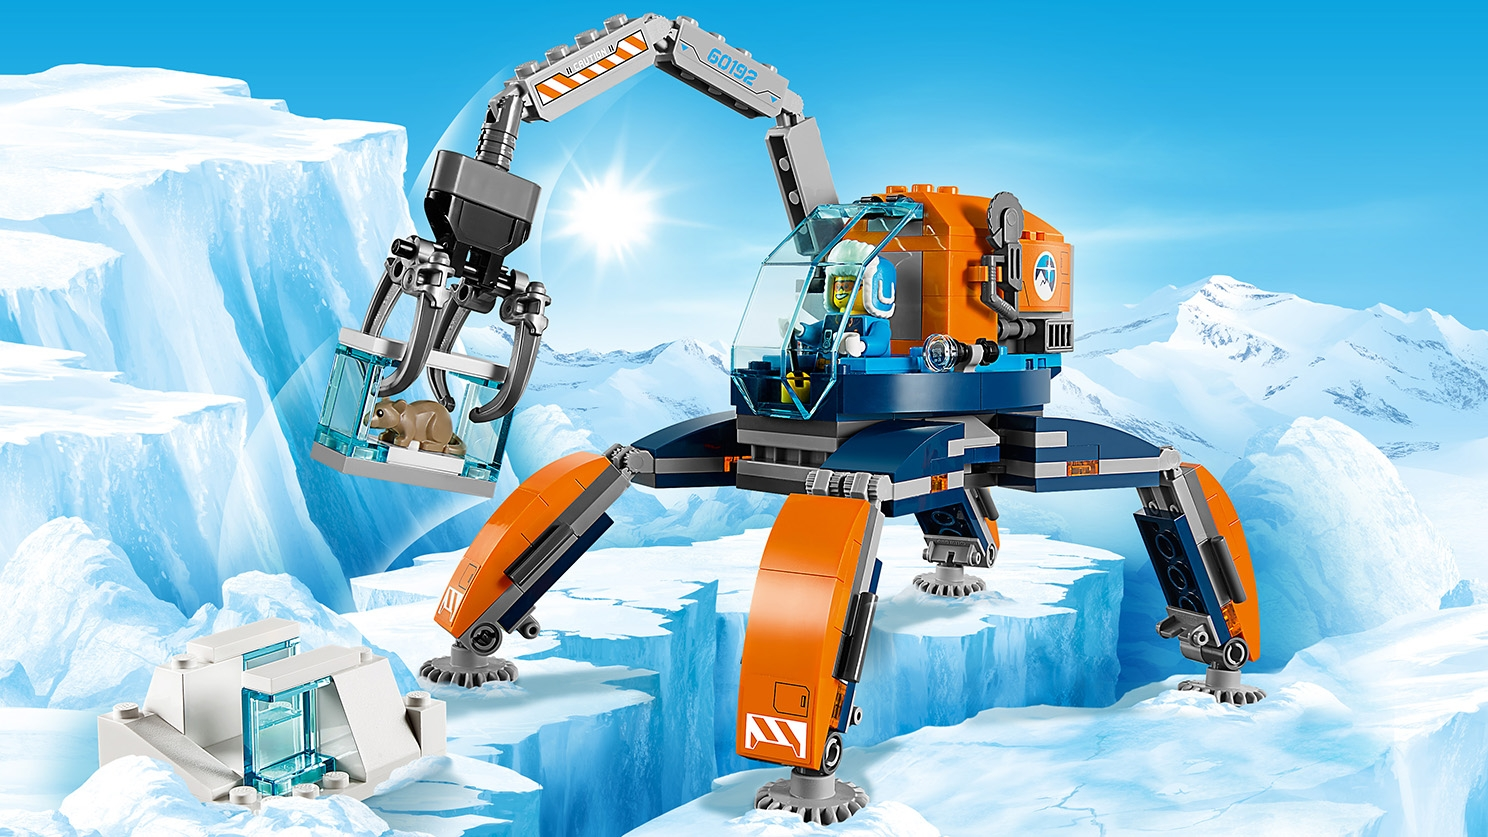 LEGO City Arctic Expedition - 60192 Ice Crawler - Lift big chunks of ice and snow with the crane of this orange ice crawler.